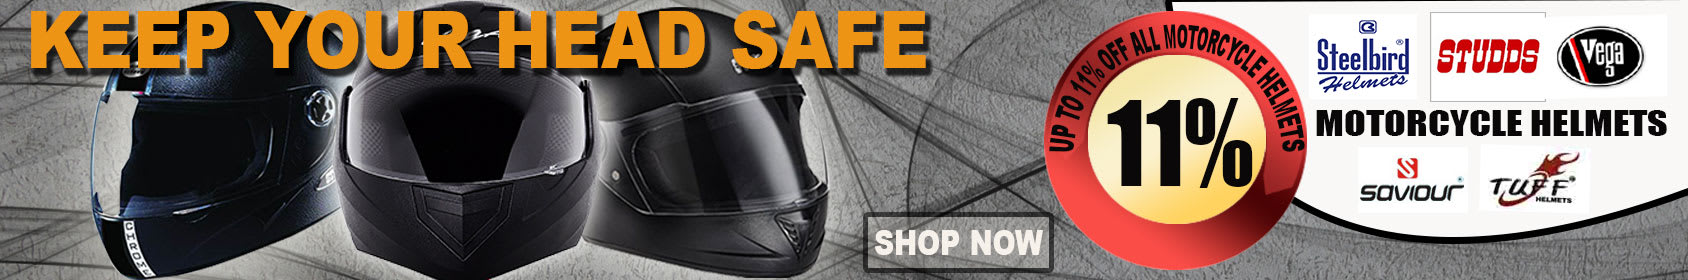 Special offers on Genuine Motorcycle Spare Parts And Accessories - 11% Off all motorcycle Helmets